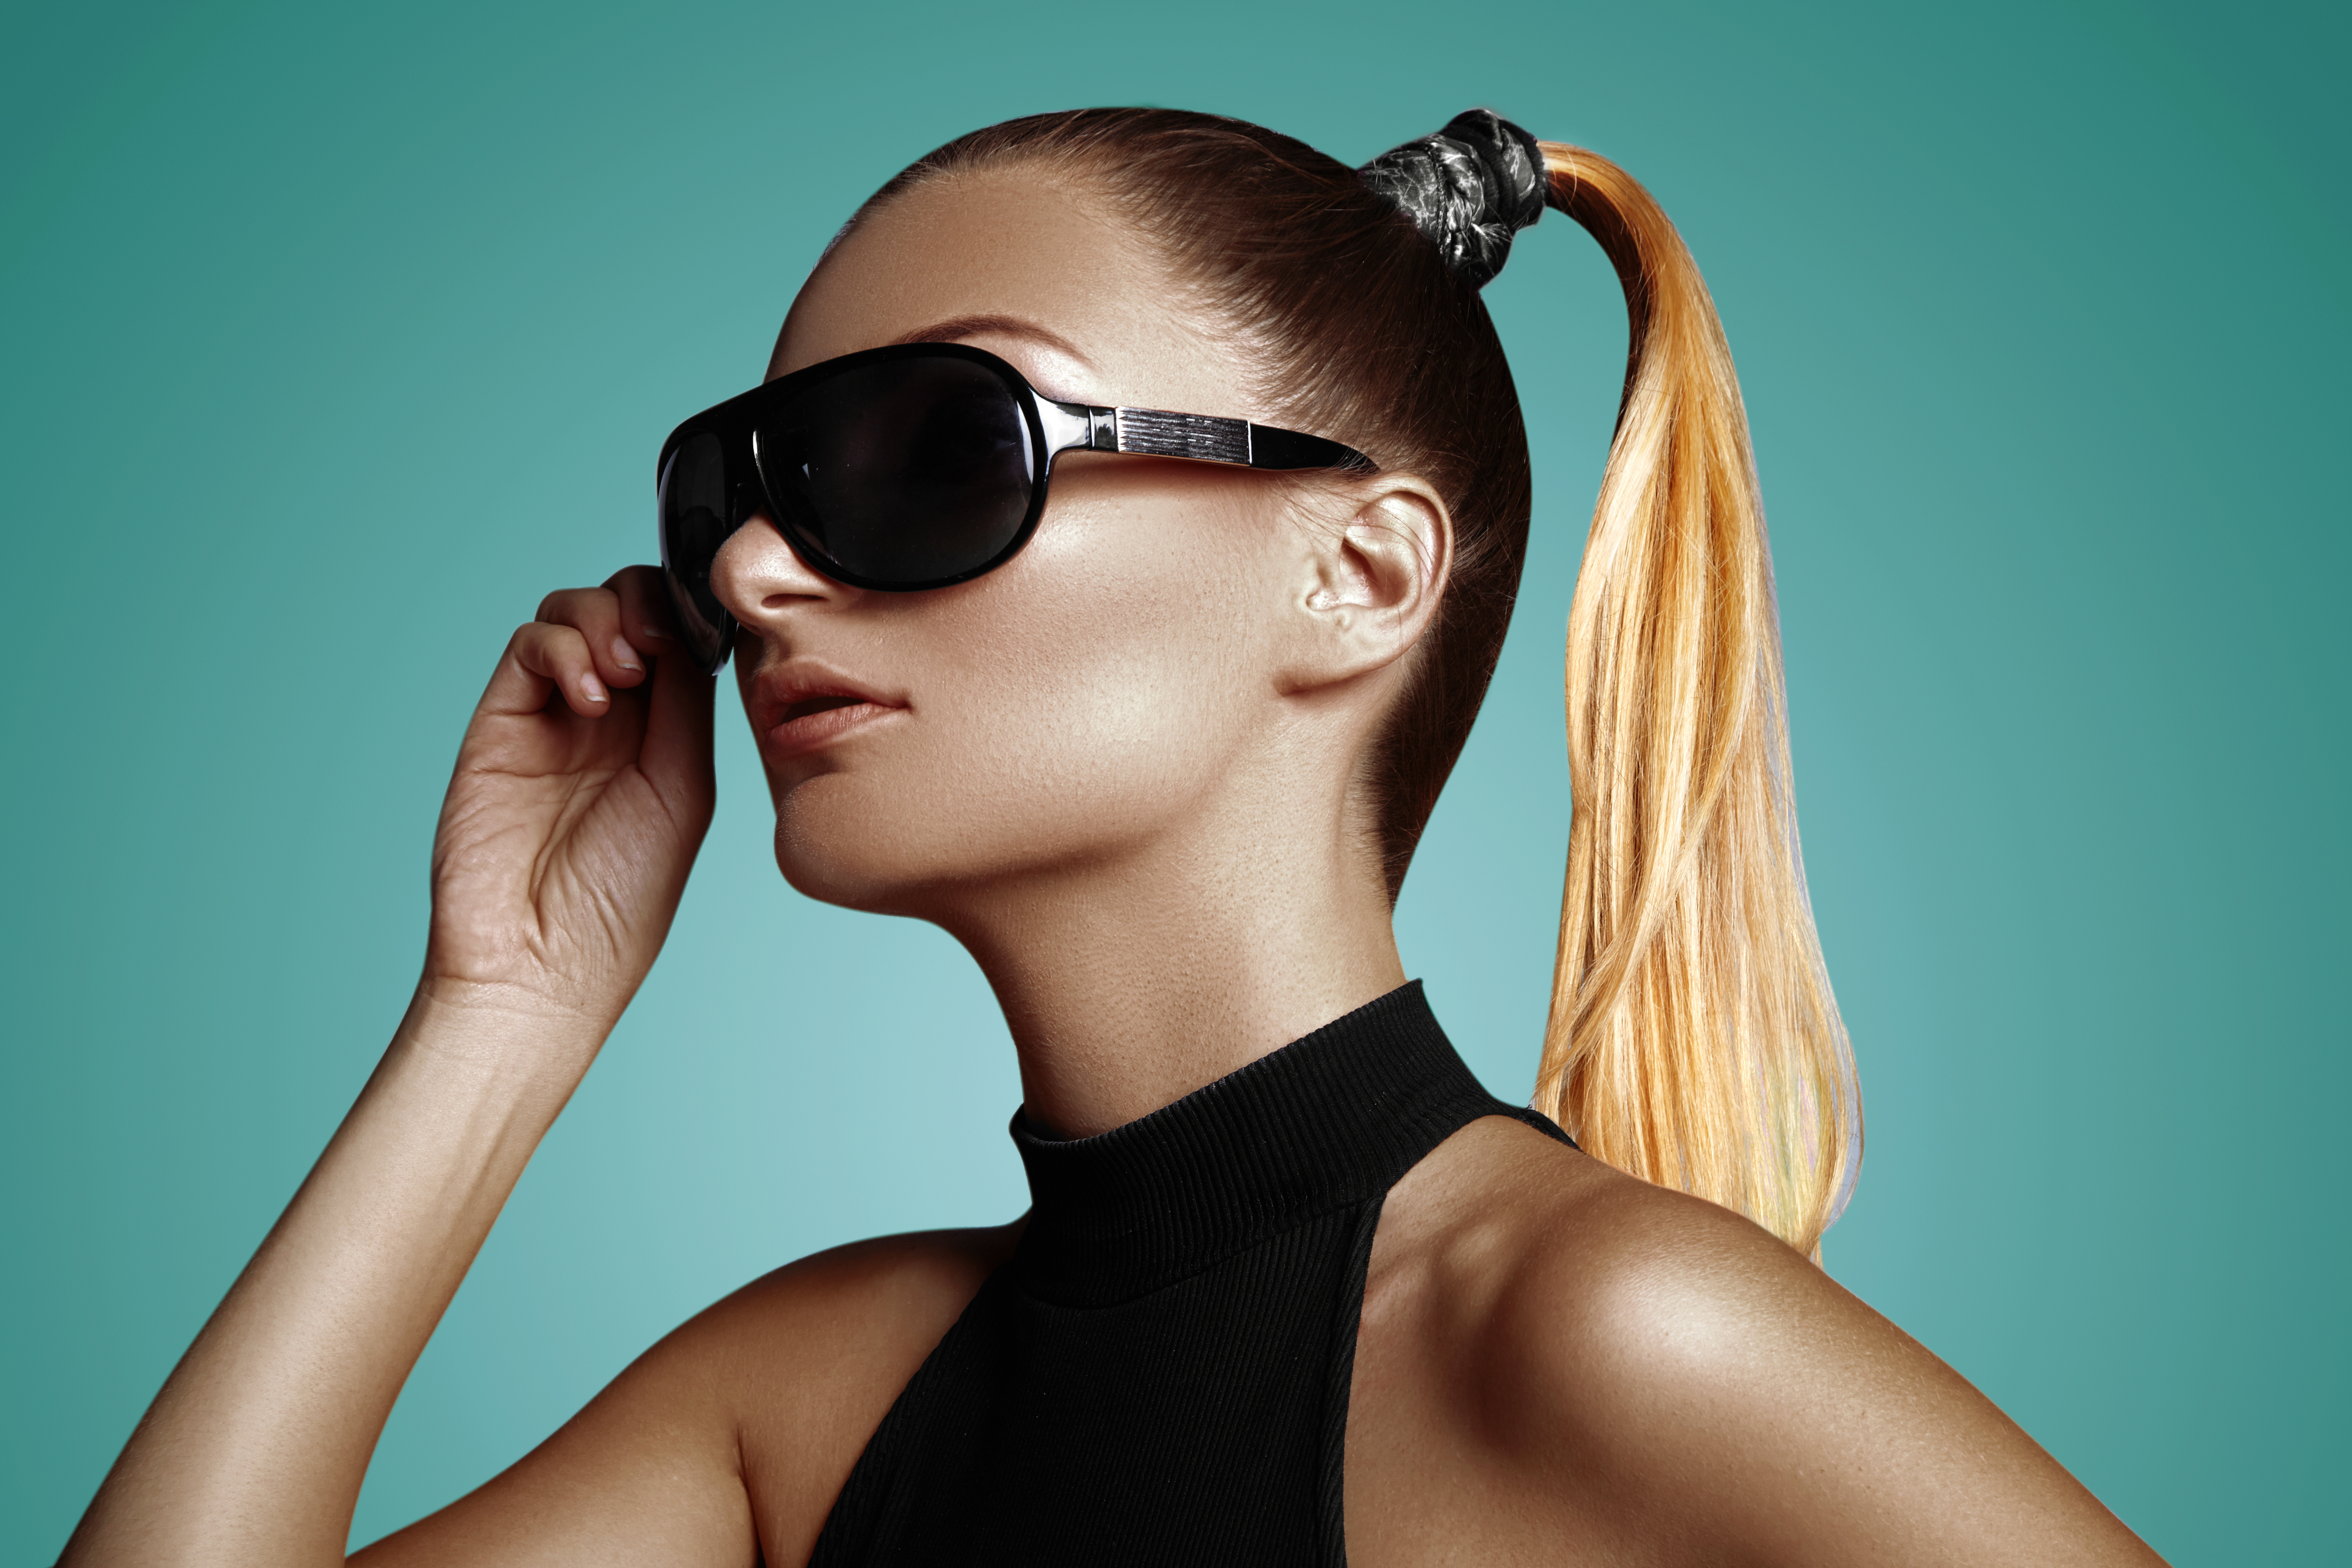 Beautiful young woman with black fashion sunglasses and